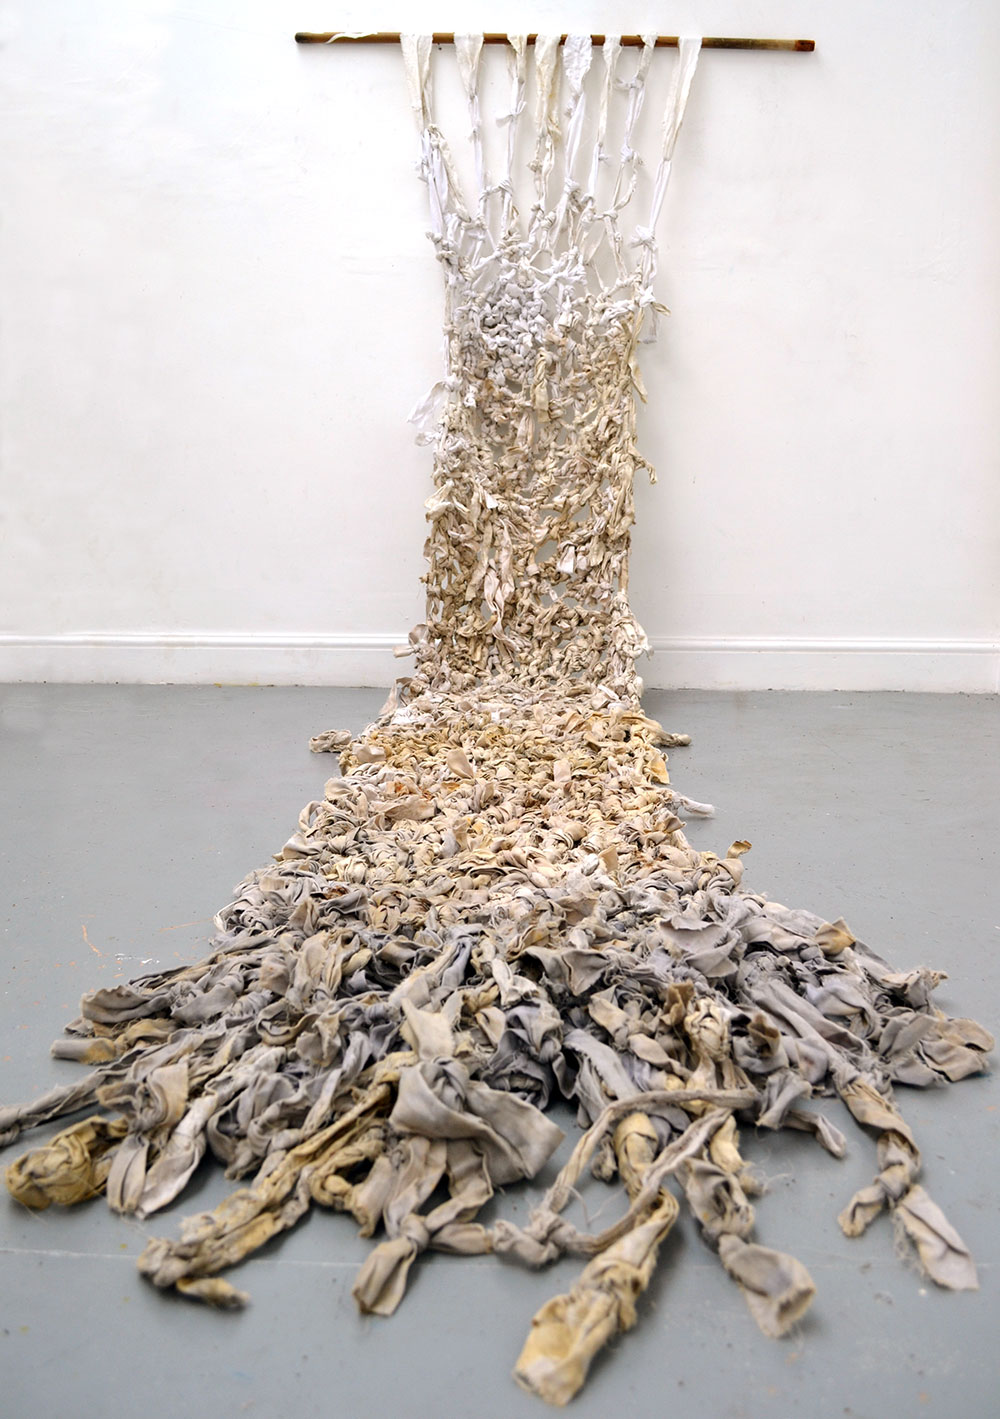 Lie Down - Textile Artwork exploring the Bosnian War